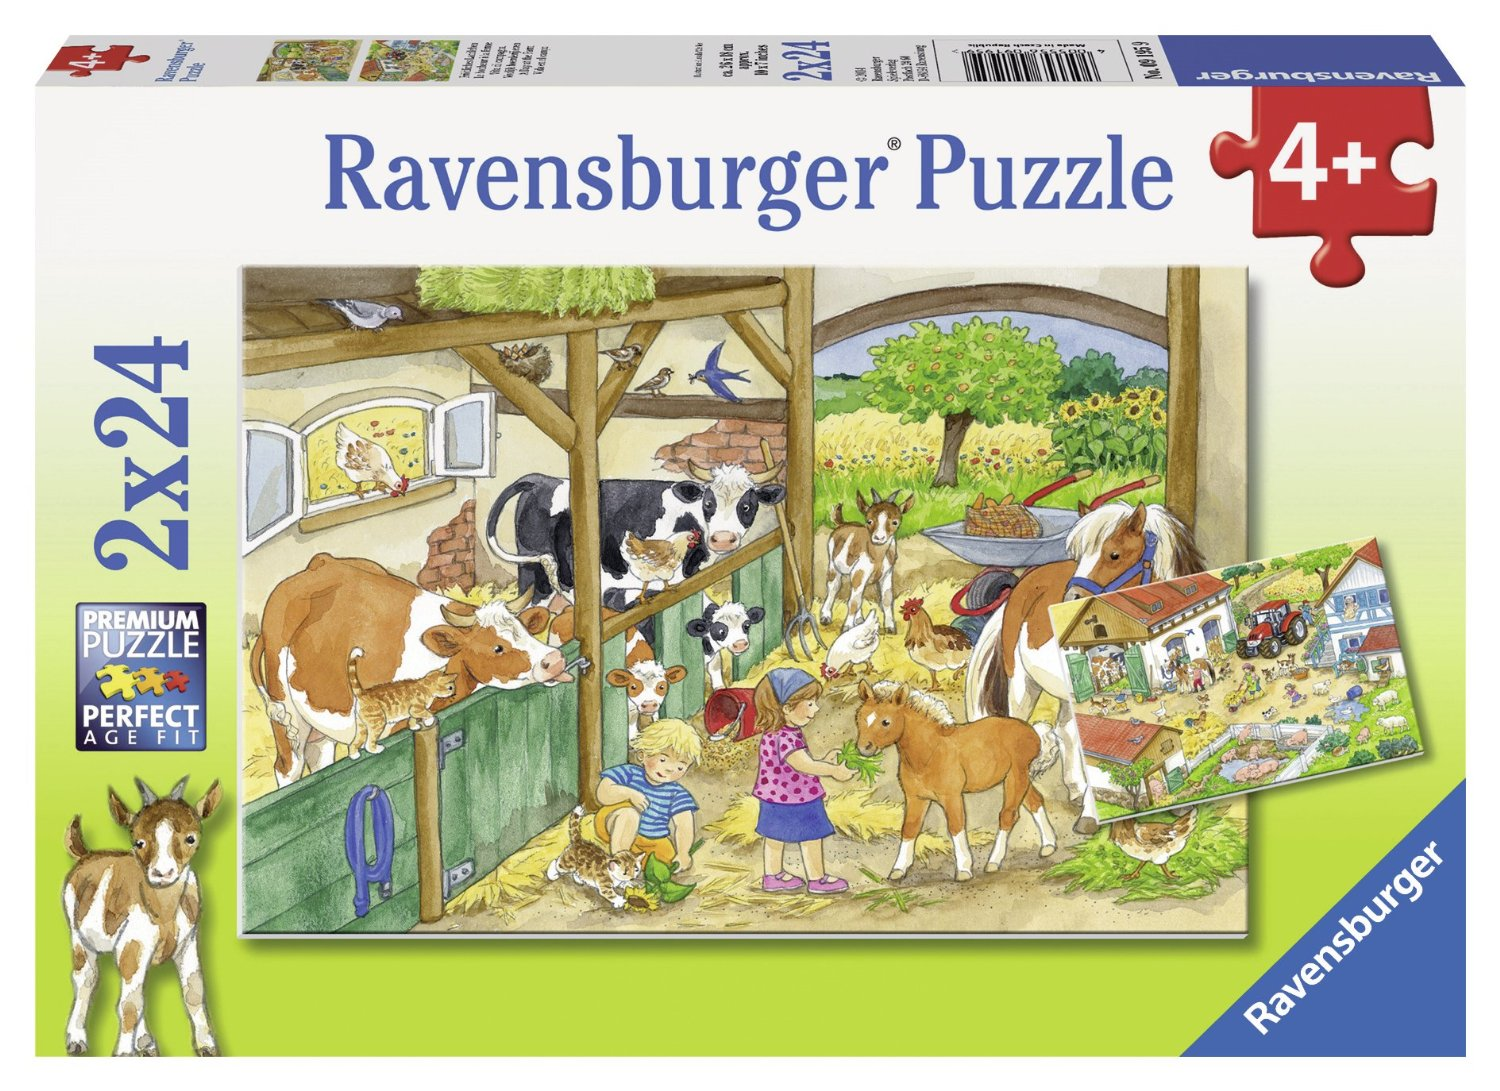 2 puzzles ein tag auf dem bauernhof 24 teile ravensburger puzzle online kaufen. Black Bedroom Furniture Sets. Home Design Ideas